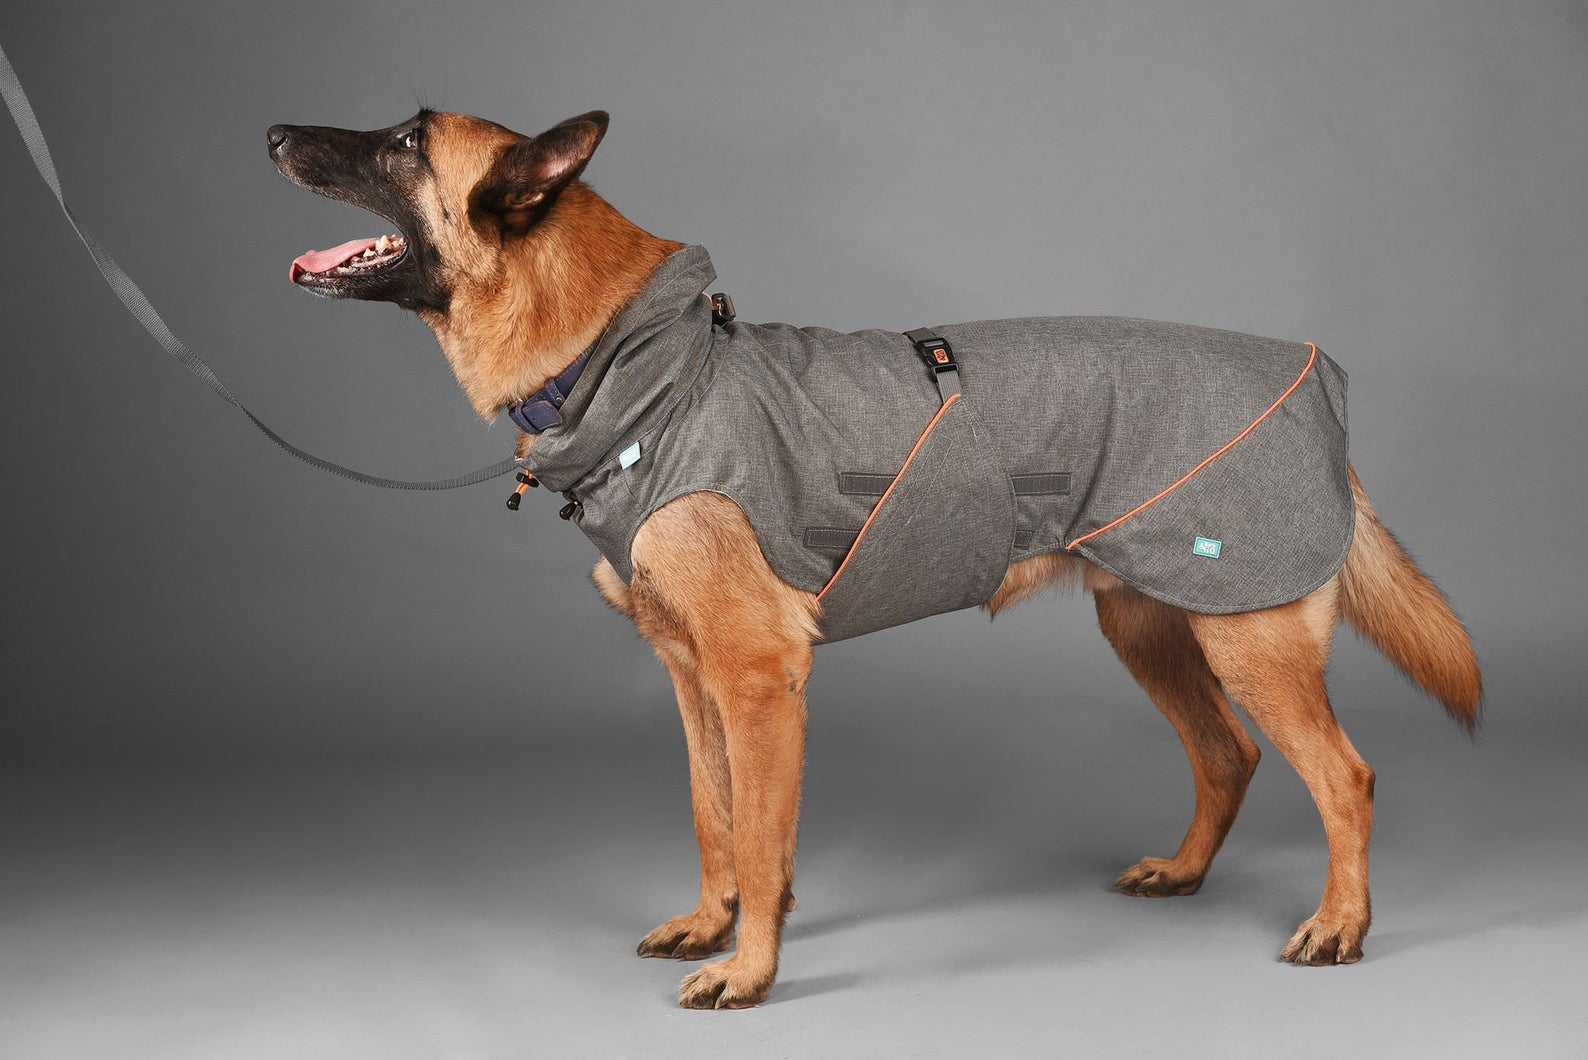 BarkAndGo Large Breed Reflective Waterproof Dog Raincoat via Etsy, Raincoats for large dogs.